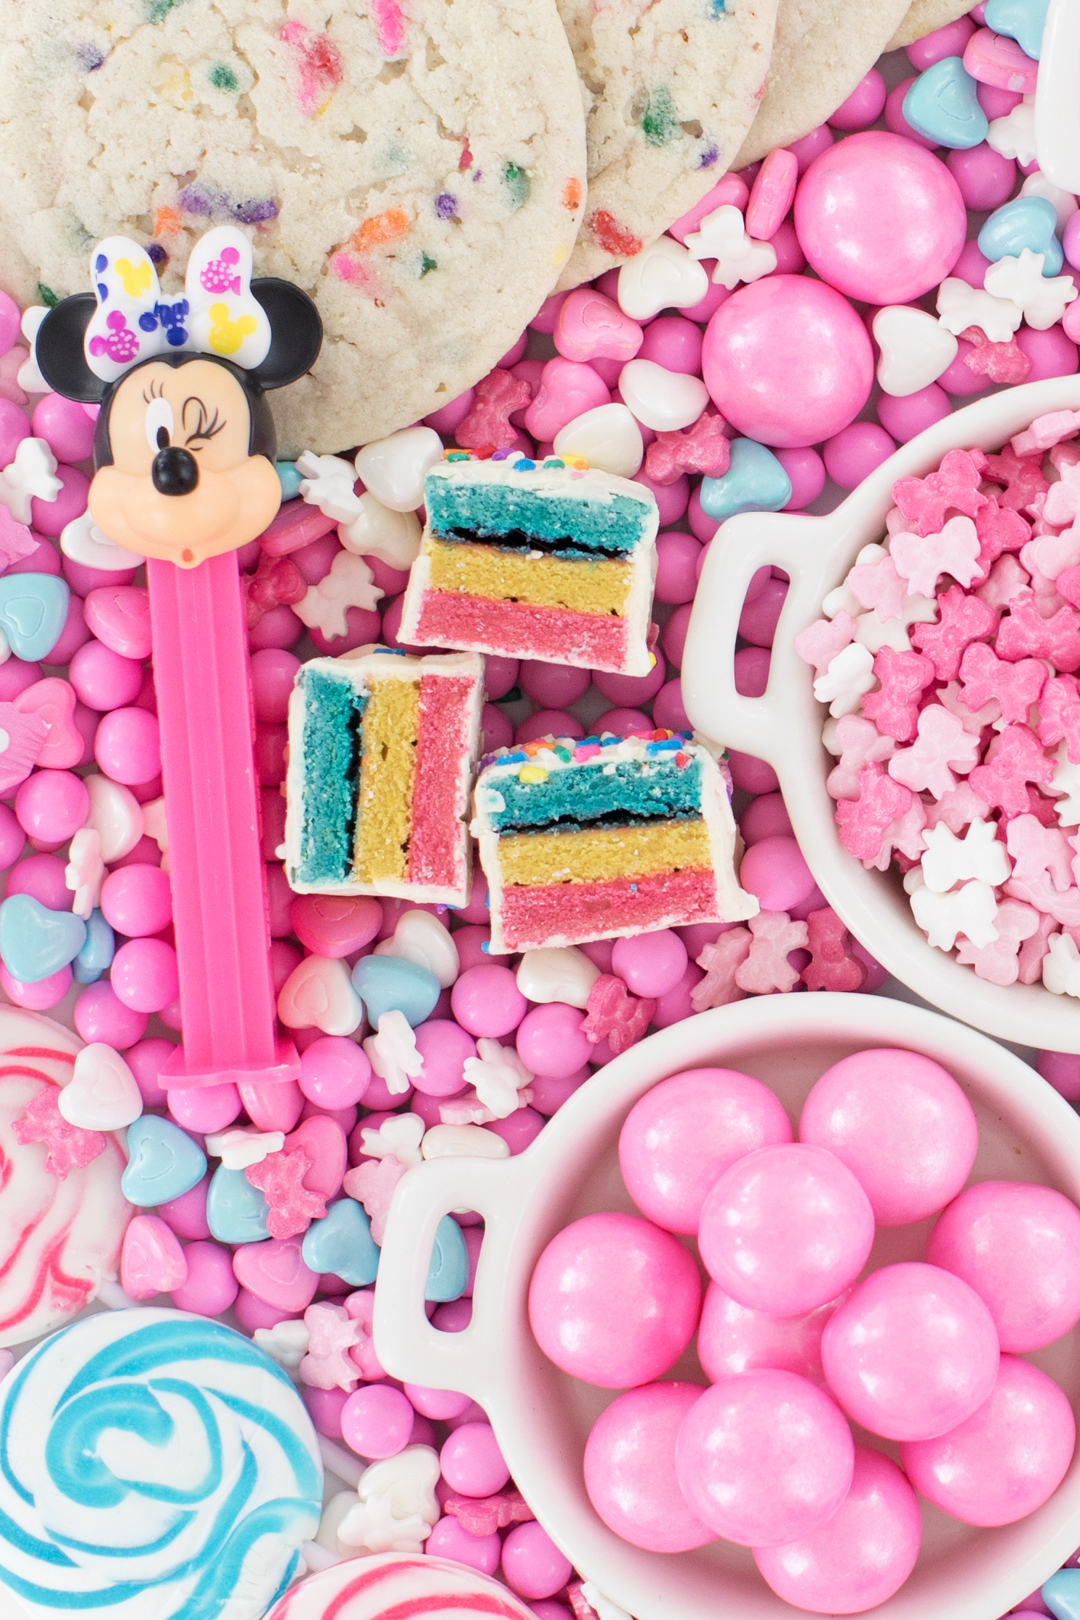 Minnie mouse pink candy board and party cake bites